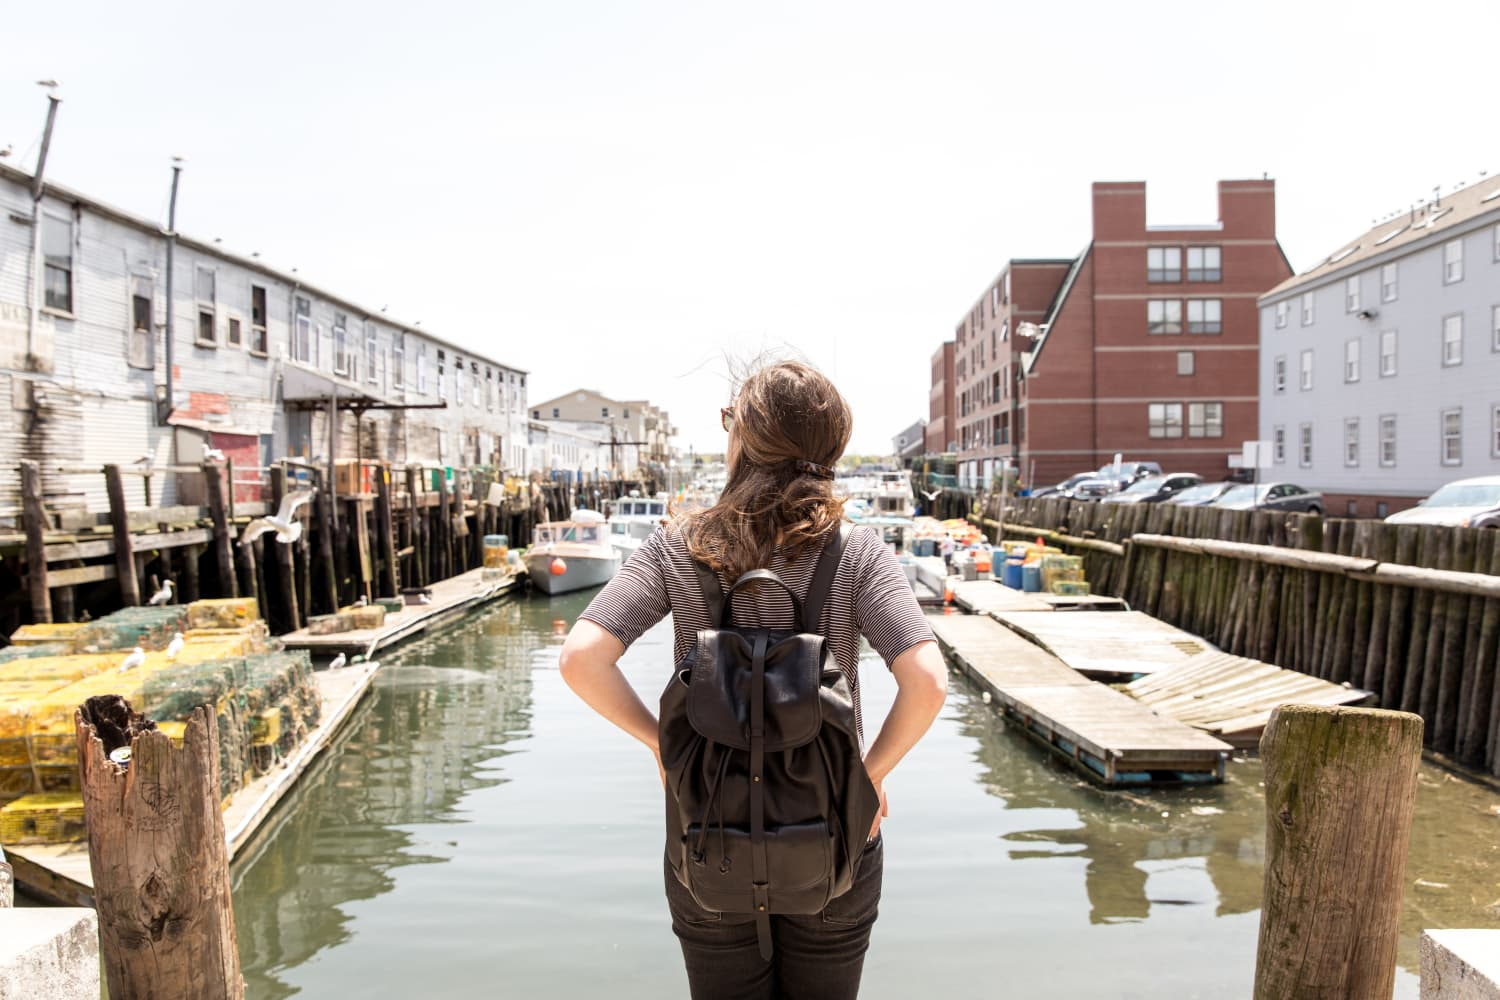 How To Explore a City in Only 48 Hours, According to Someone Who Visited 52 Places In One Year